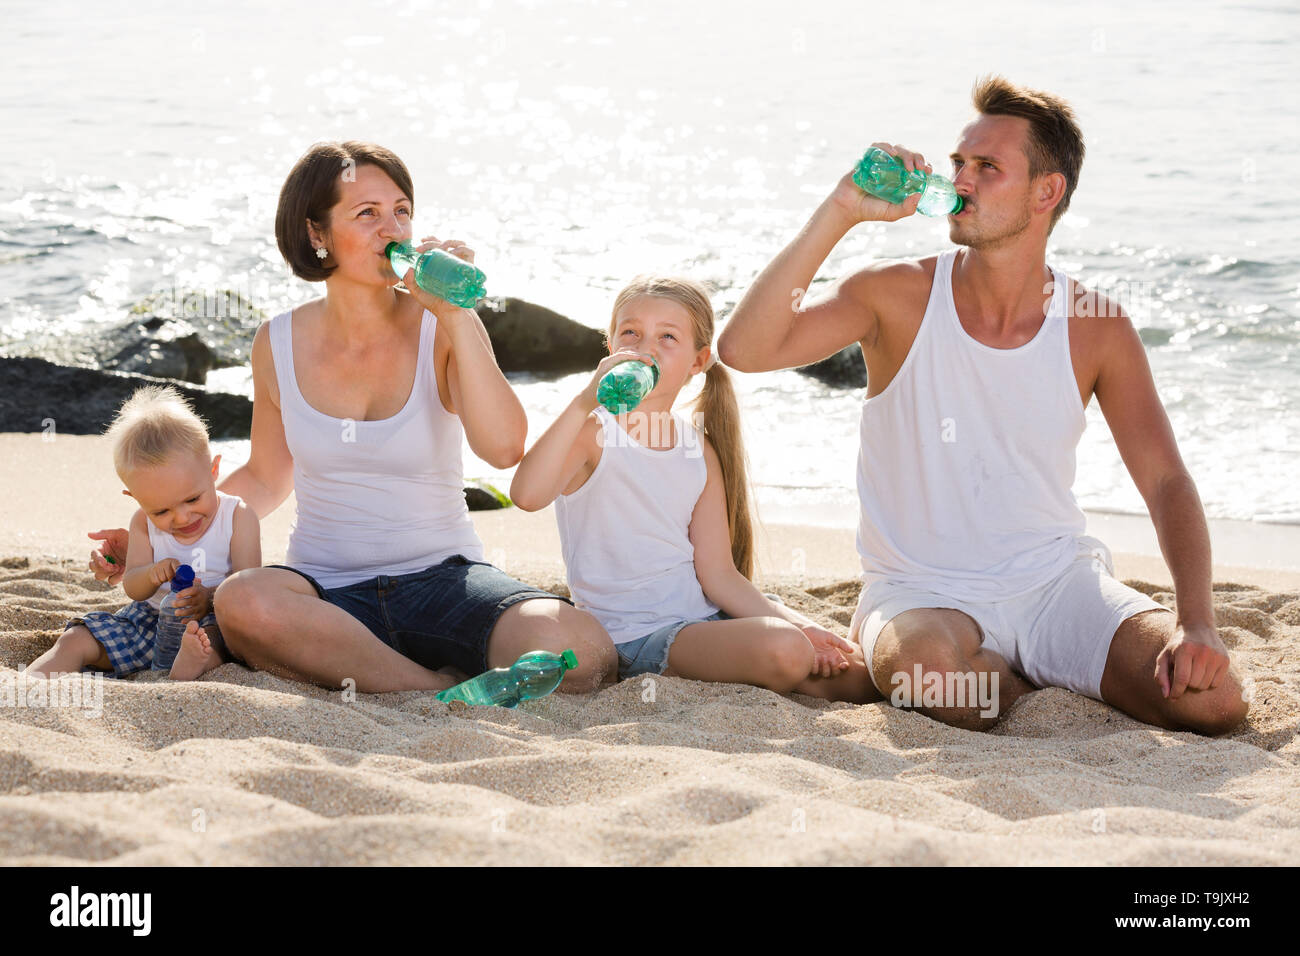 happy young parents with two kids sitting together on sandy beach and drinking fresh water - Stock Image